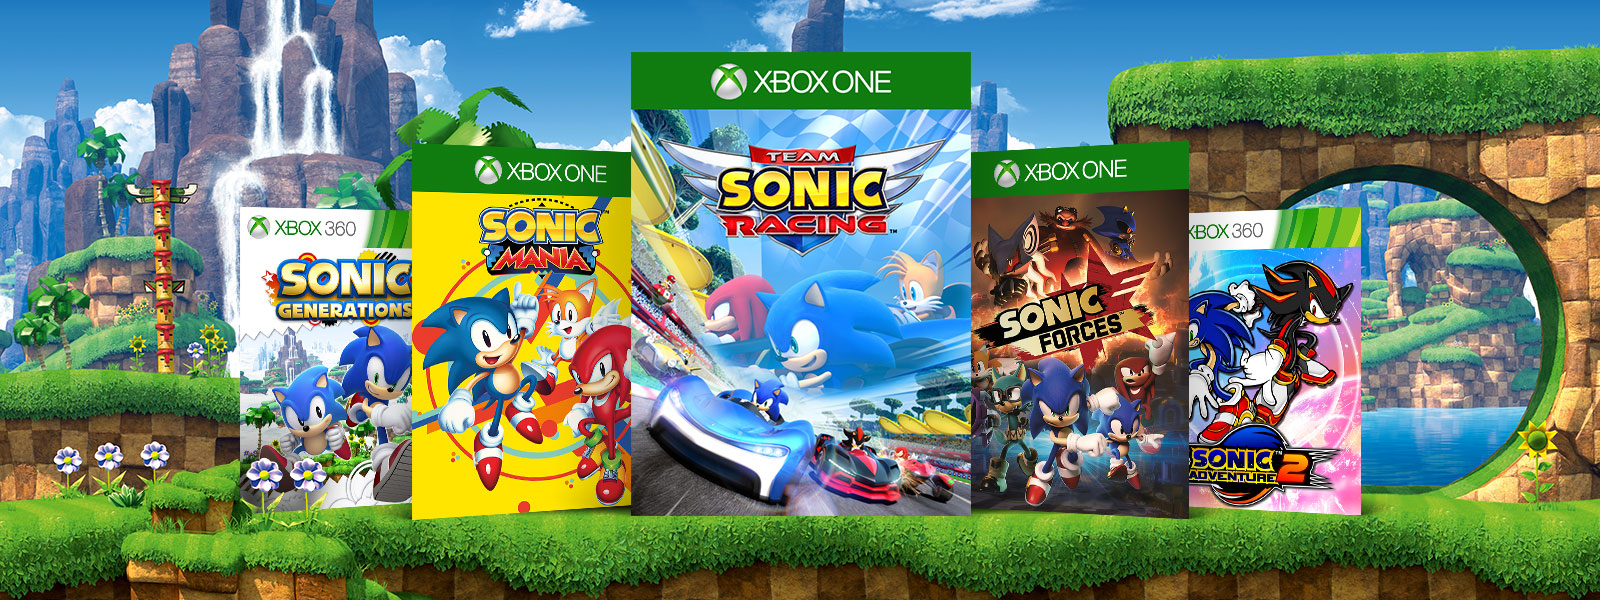 A collage of box art for classic and modern Xbox One and Xbox 360 Sonic games against a backdrop of tropical structures and plant life.